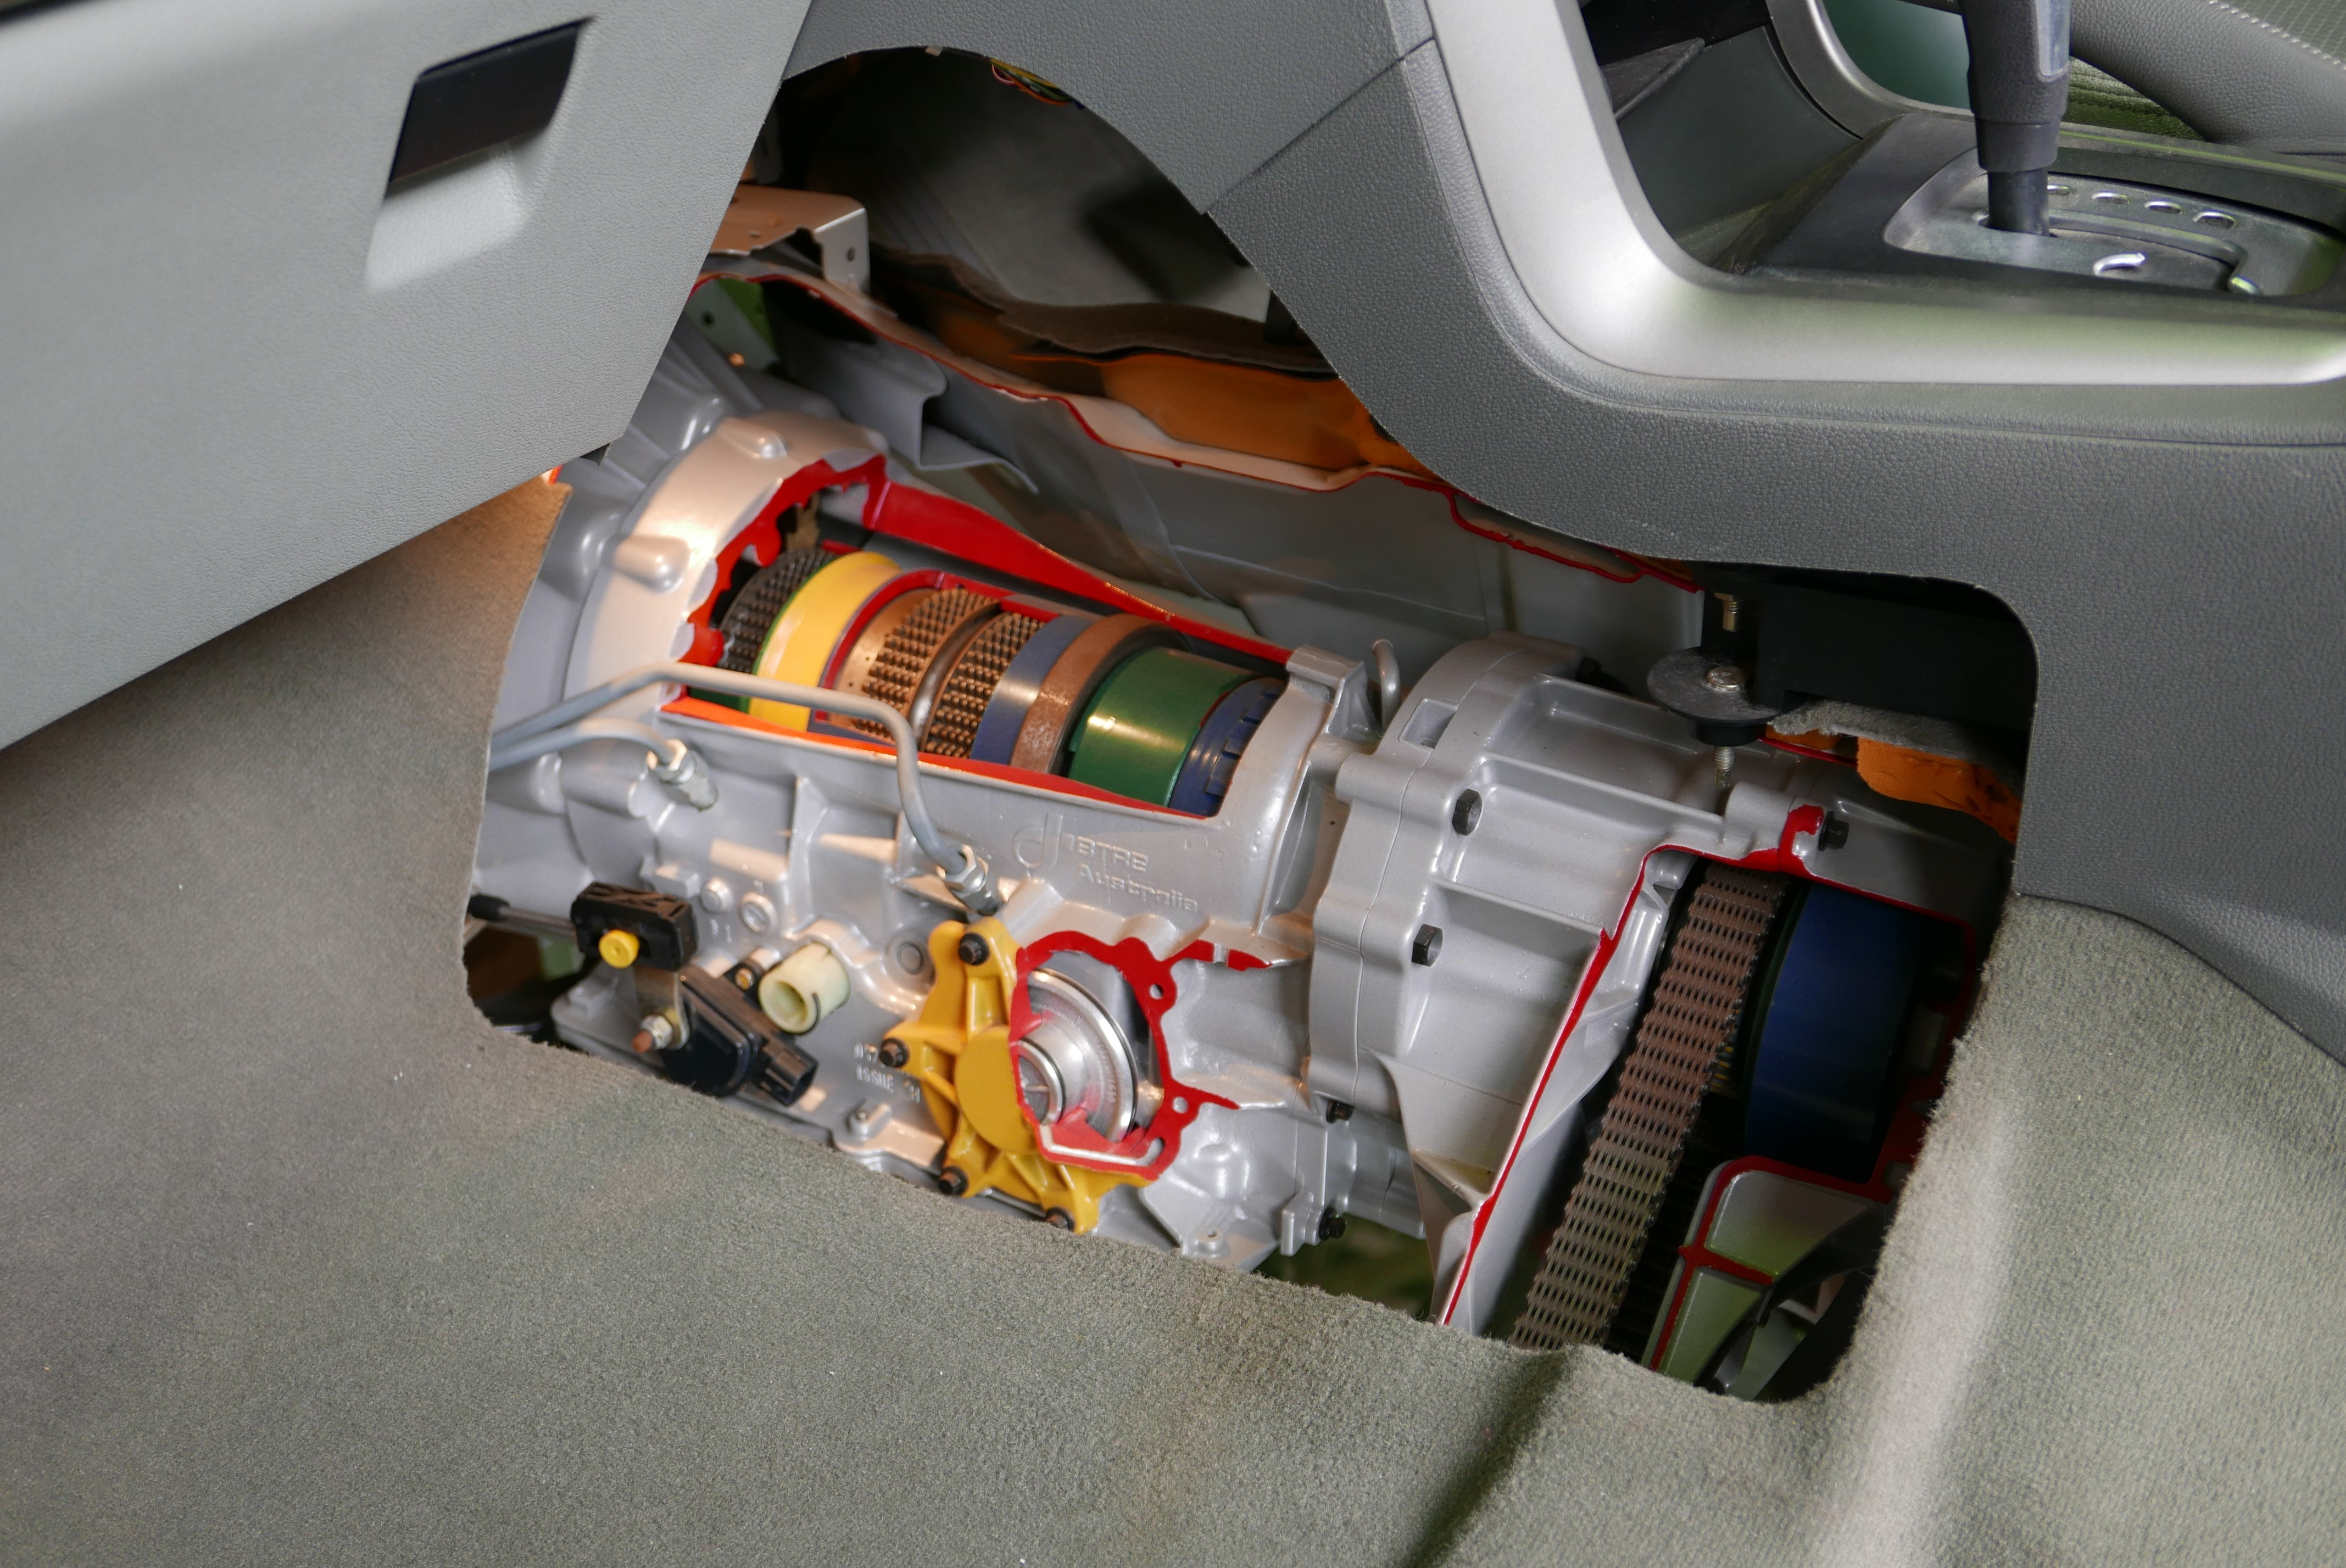 Automatic transmission - The complete information and online